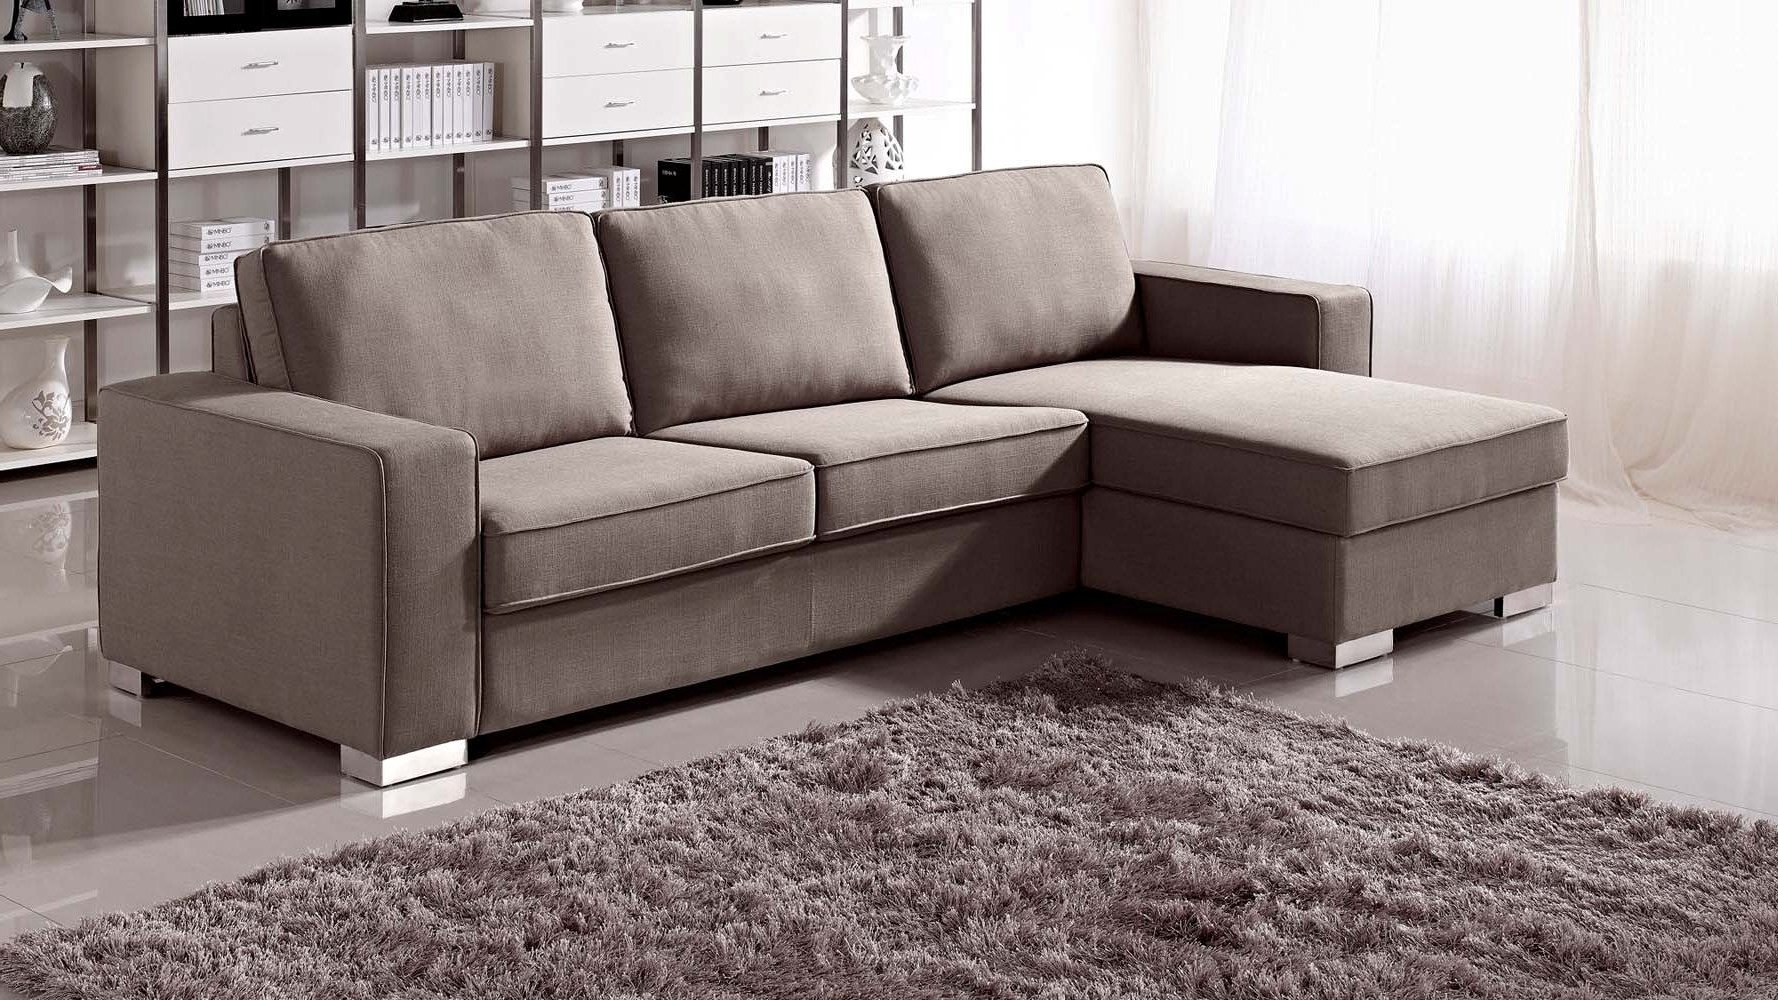 Best And Newest Adjustable Sectional Sofas With Queen Bed In Sectional Sofa With Sleeper And Chaise (View 6 of 15)